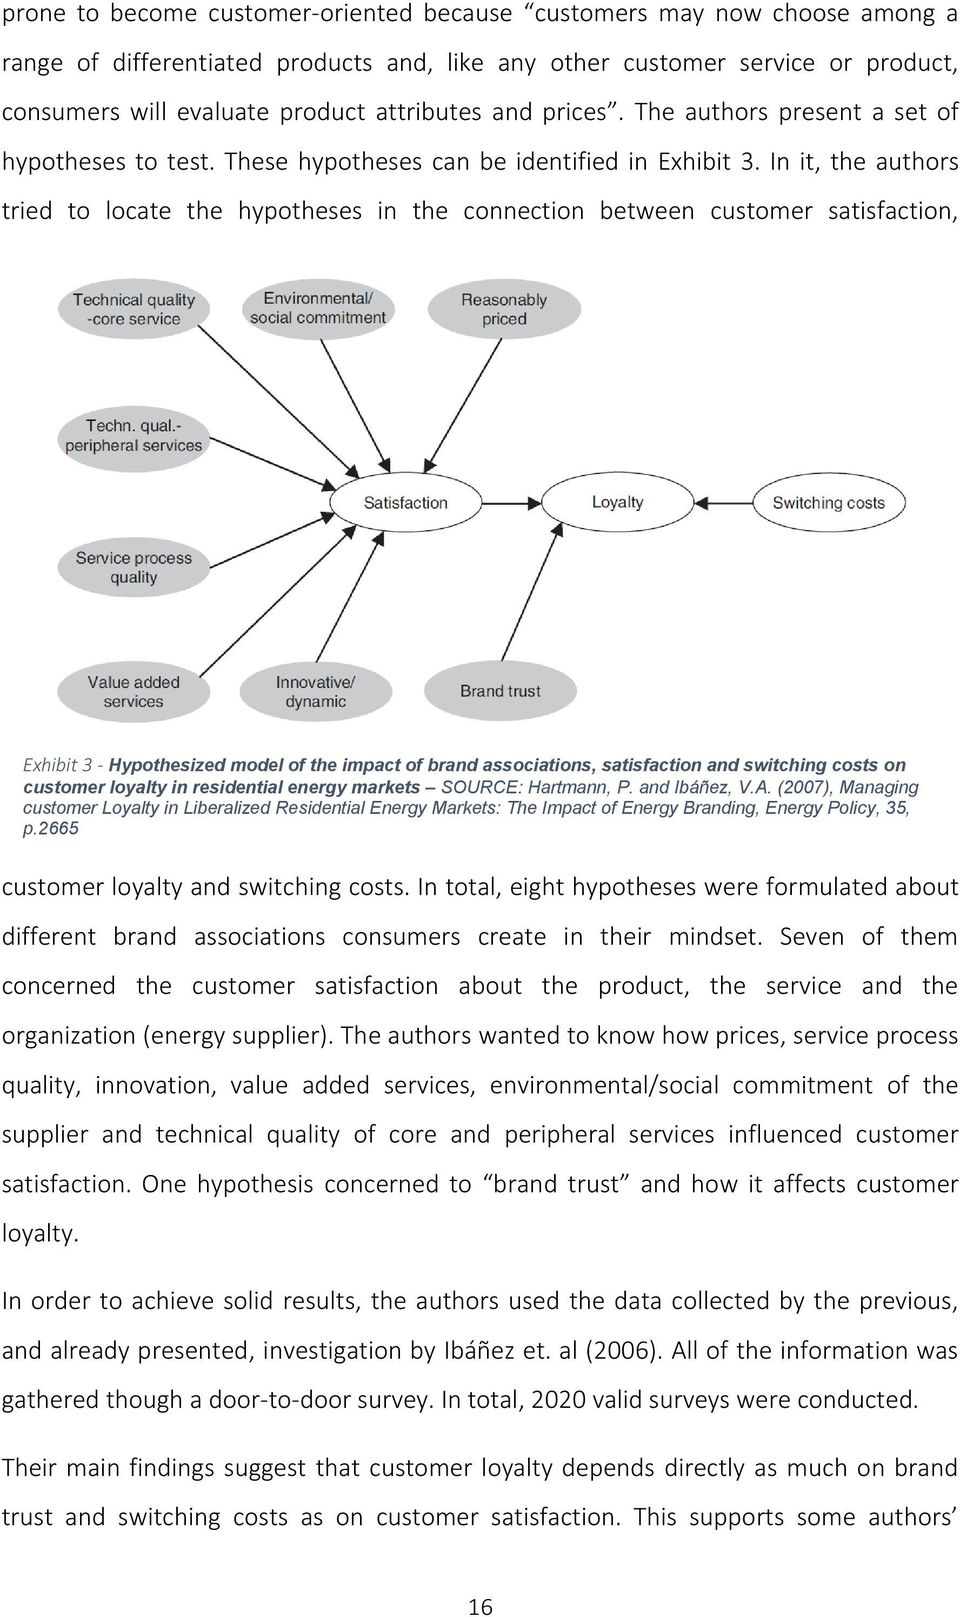 In it, the authors tried to locate the hypotheses in the connection between customer satisfaction, Exhibit 3 - Hypothesized model of the impact of brand associations, satisfaction and switching costs